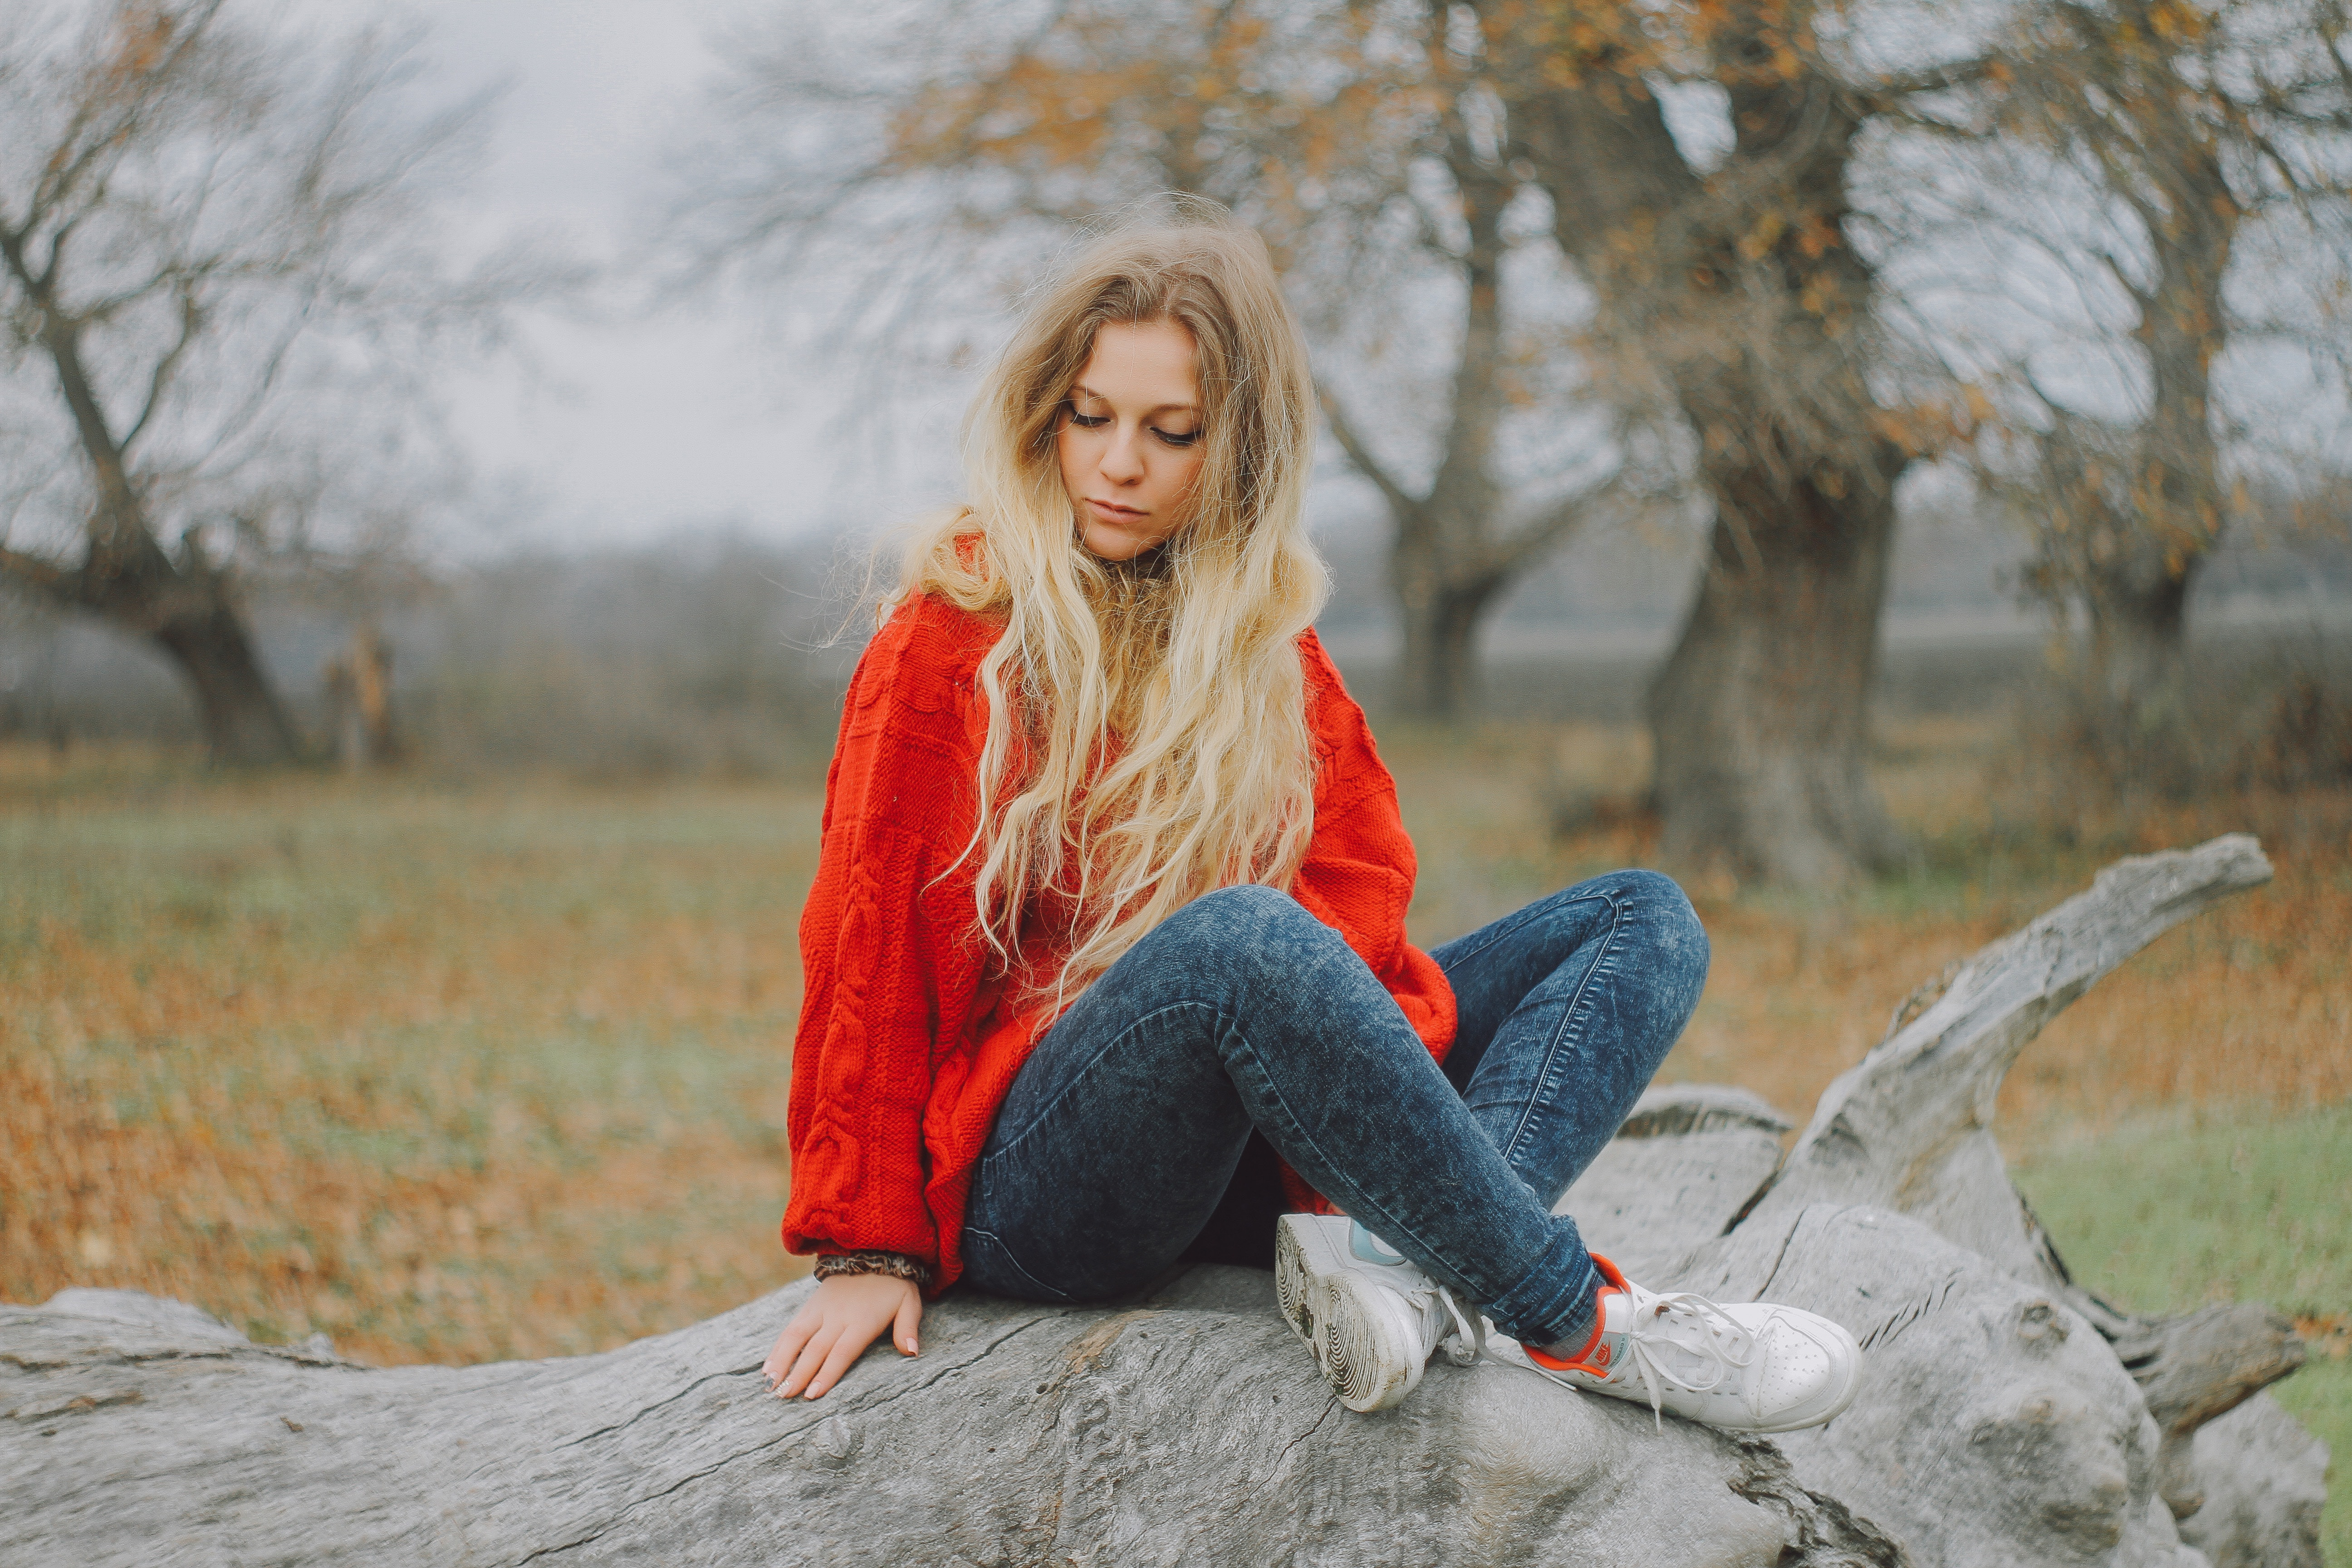 Woman in Red Sweater Sitting on Cutted Tree, Beautiful, Outdoors, Woman, Wear, HQ Photo